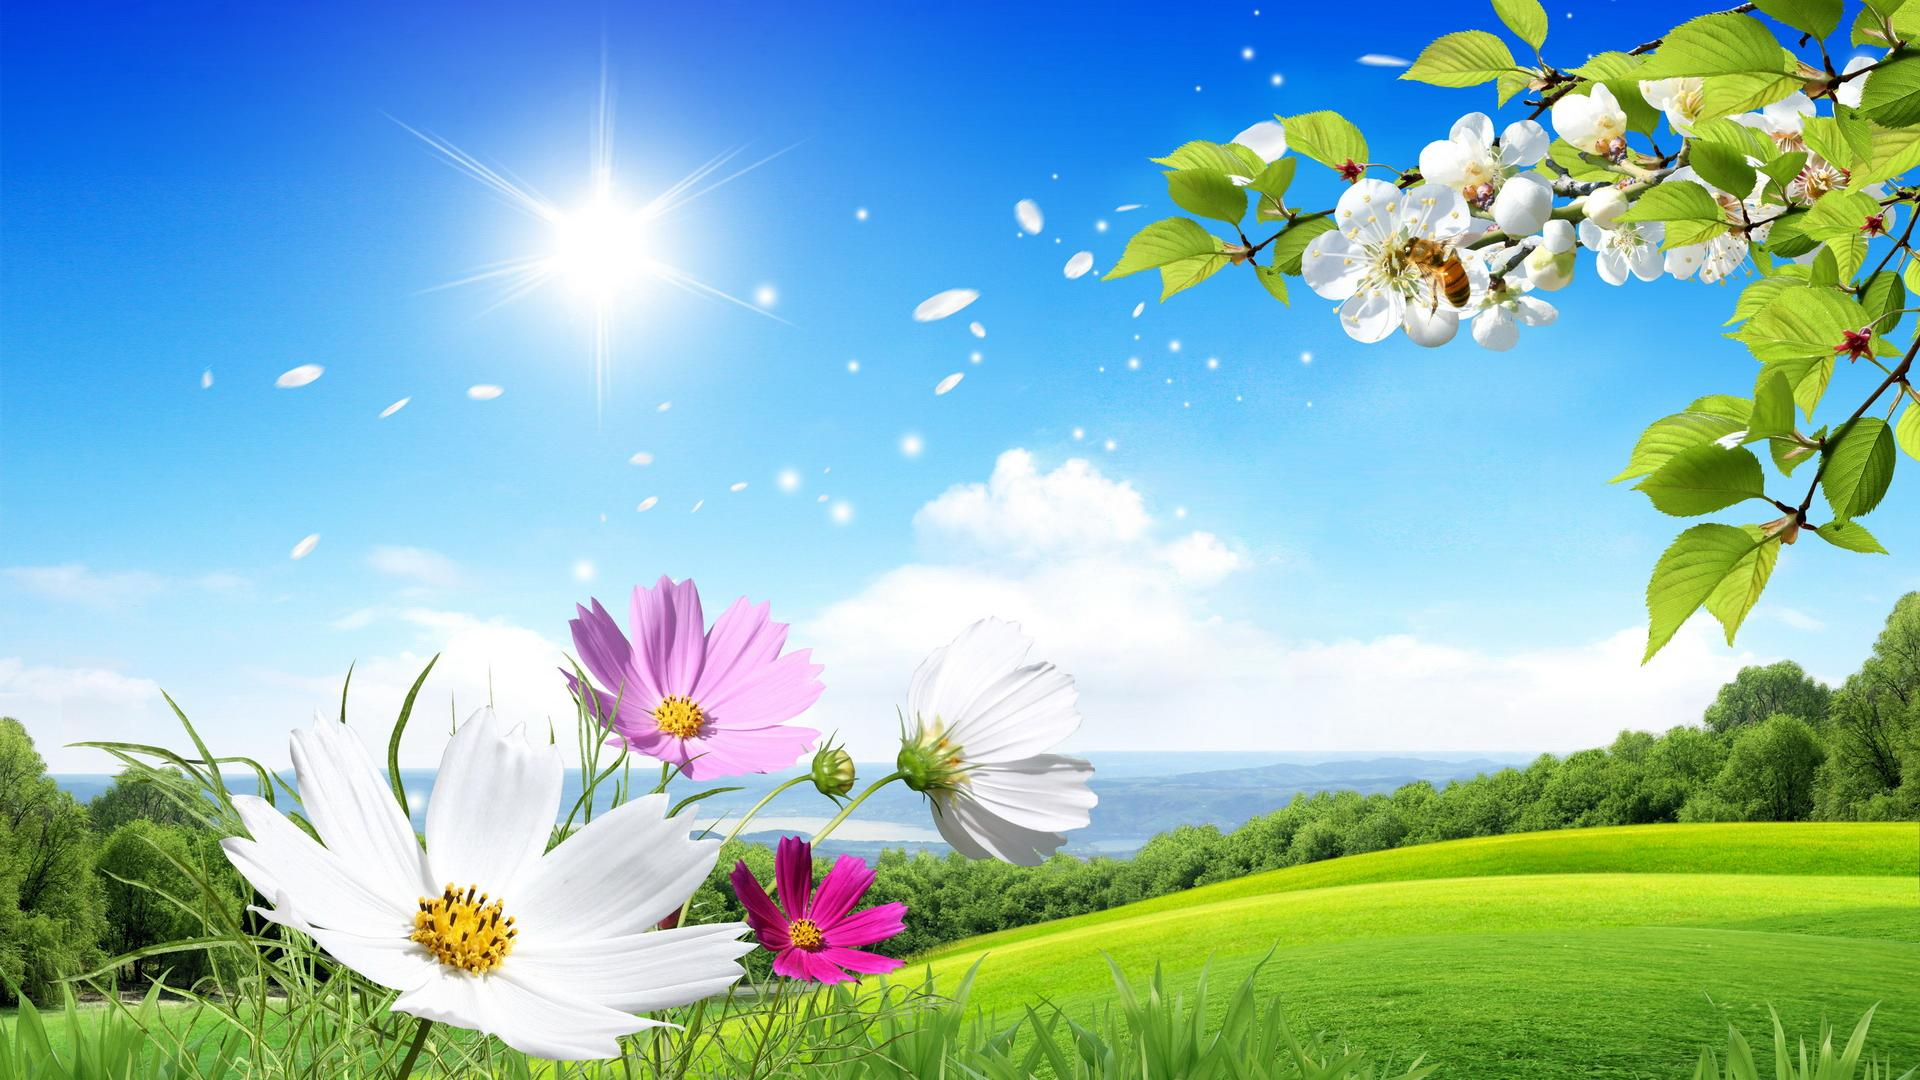 Free Download 1920x1080 Beautiful Summer And Flowers Scenery